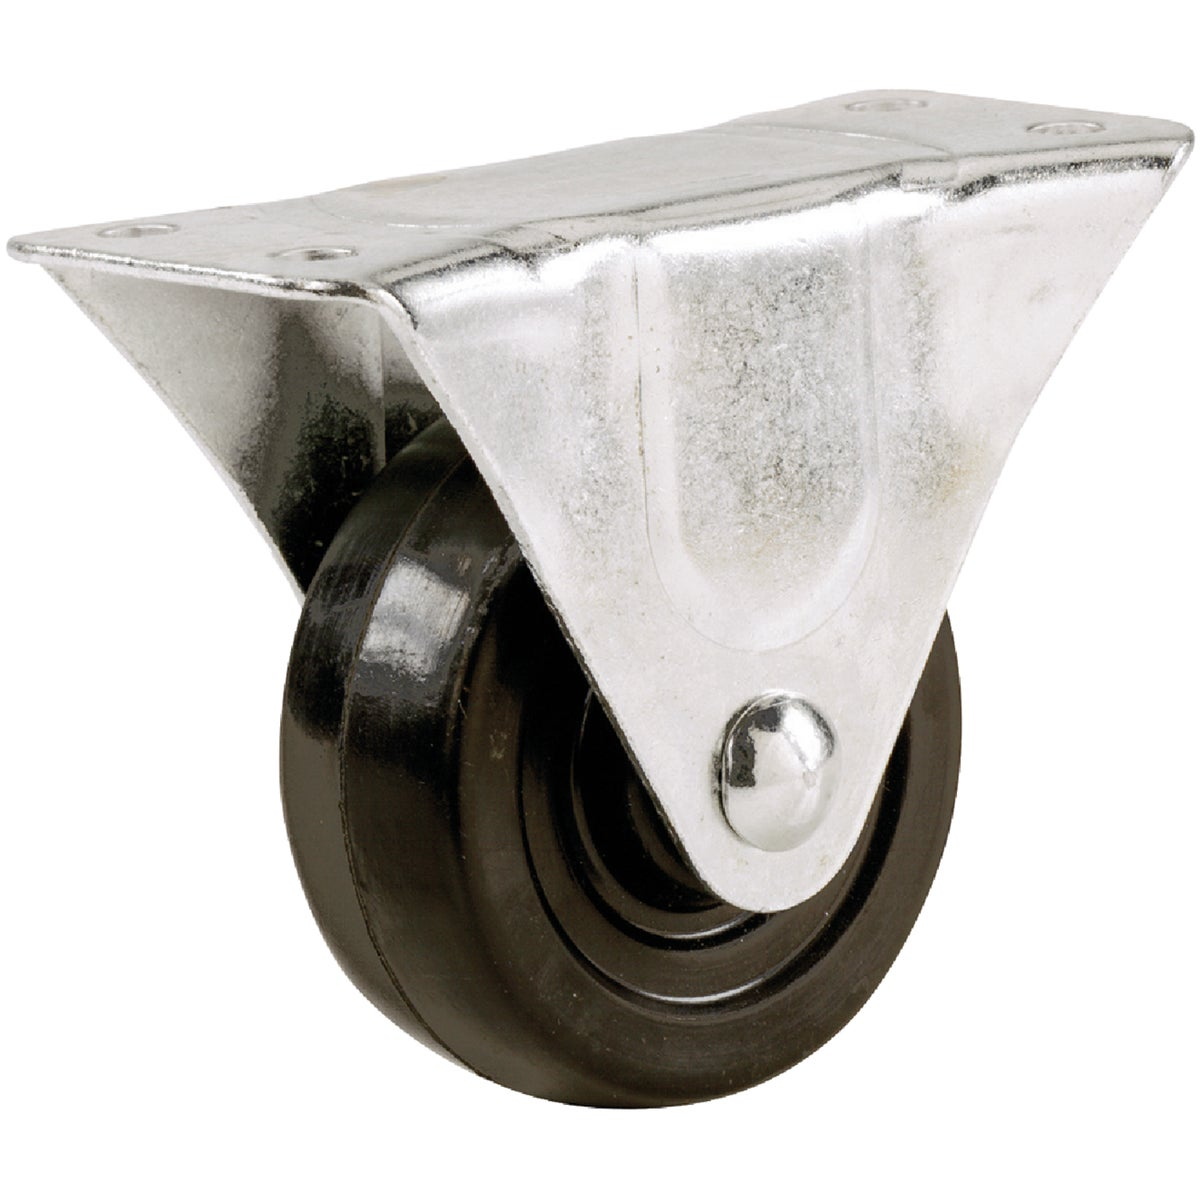 "4"" RIGID RUBBER CASTER - 9484 by Shepherd Hardware"